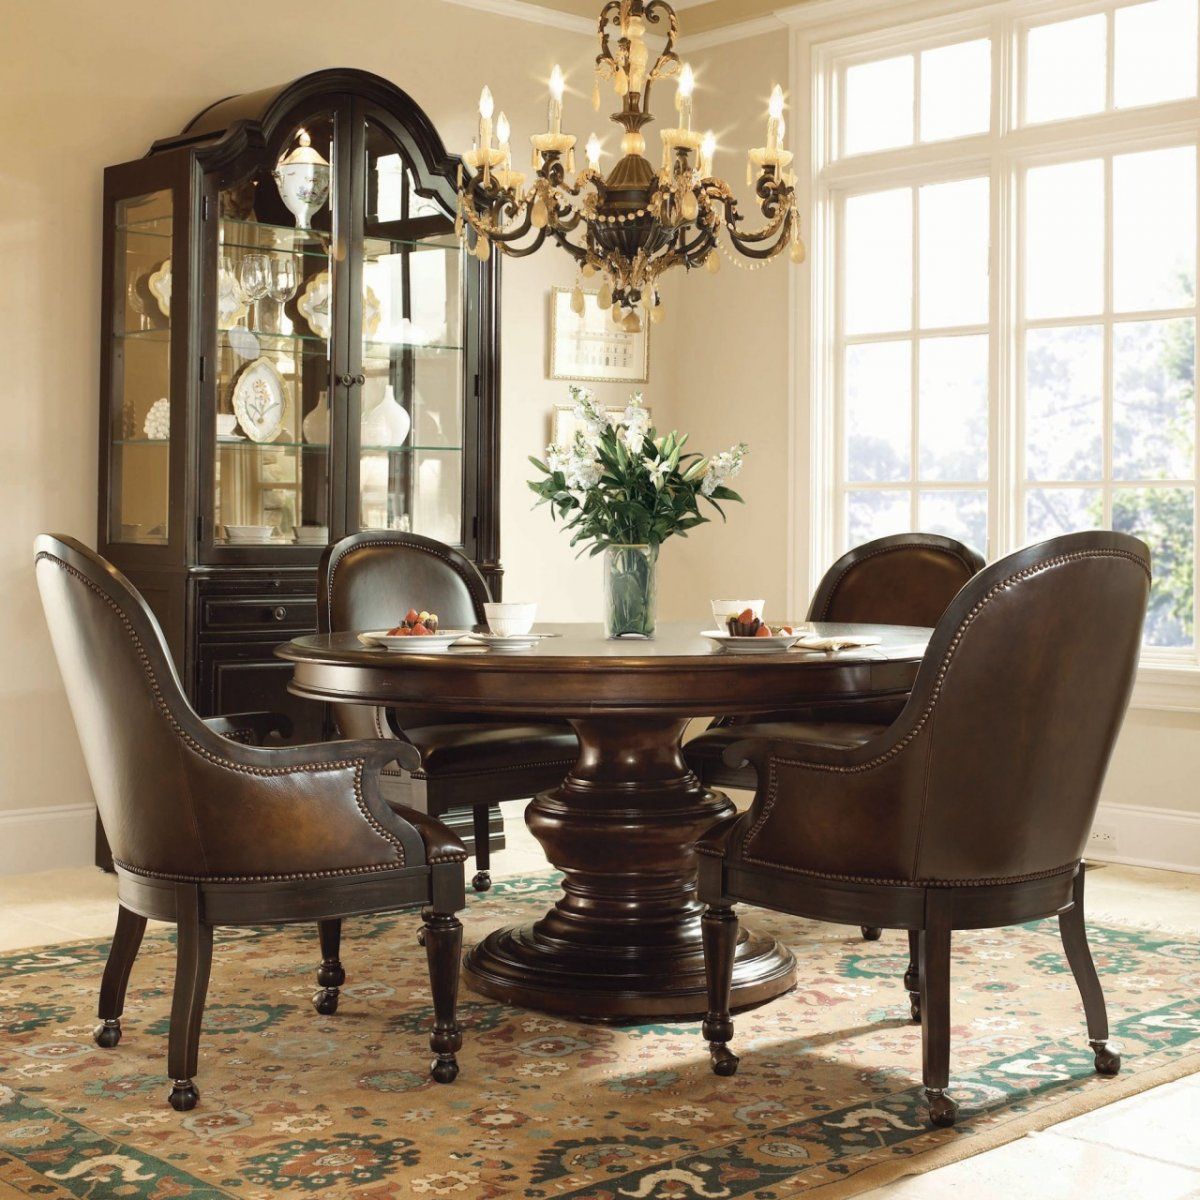 Image of: Dining Room Chairs With Casters Ideas